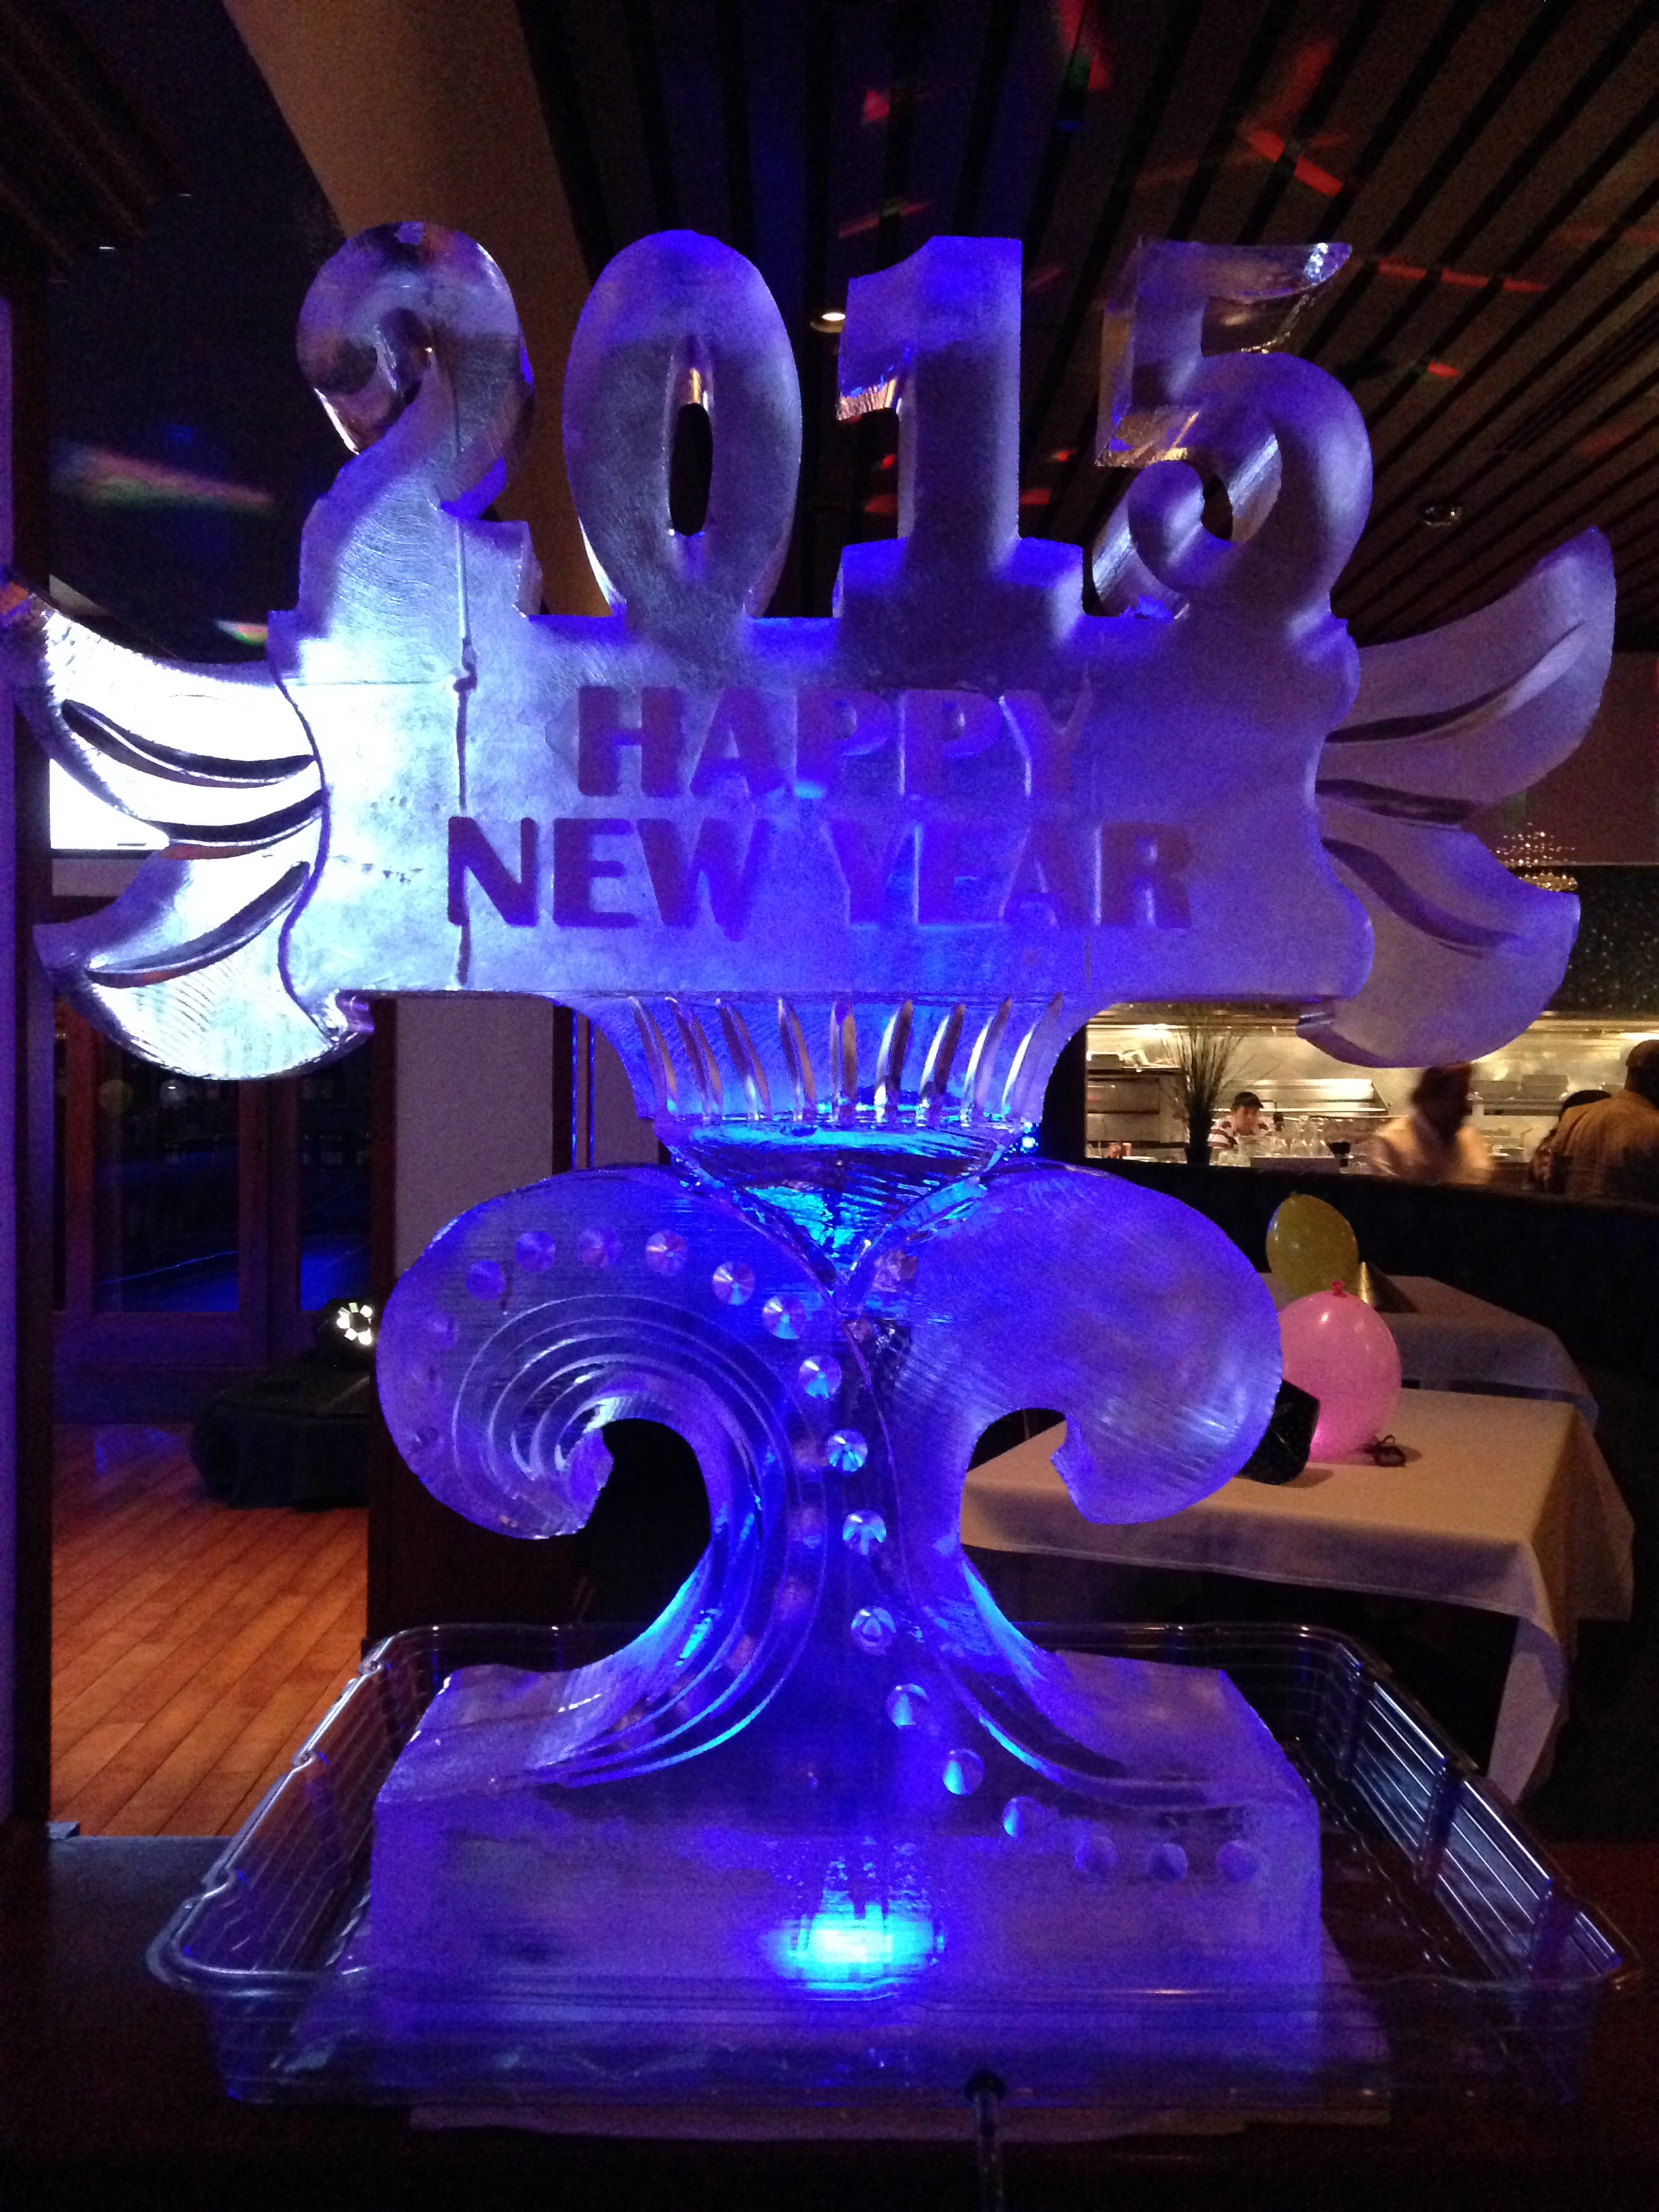 Happy new year ice sculpture